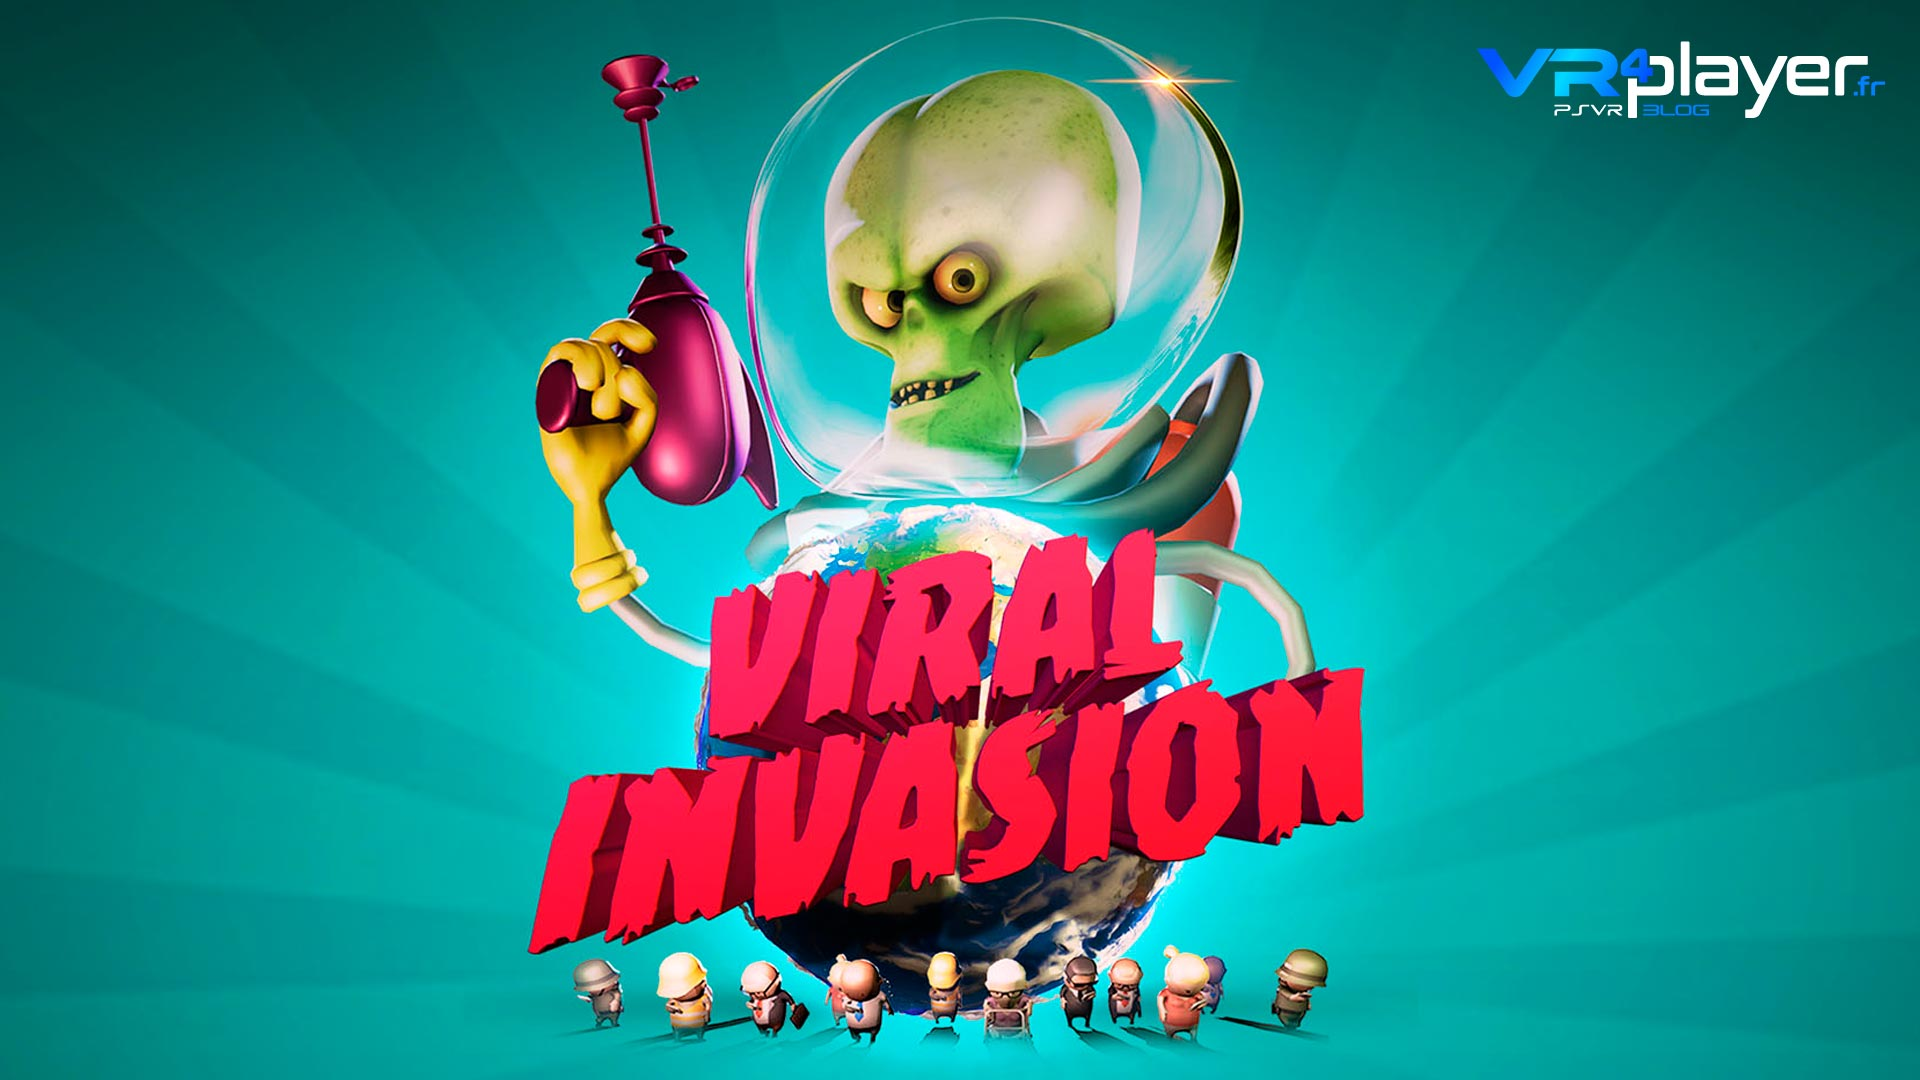 Viral Invasion VR4player PlayStation VR